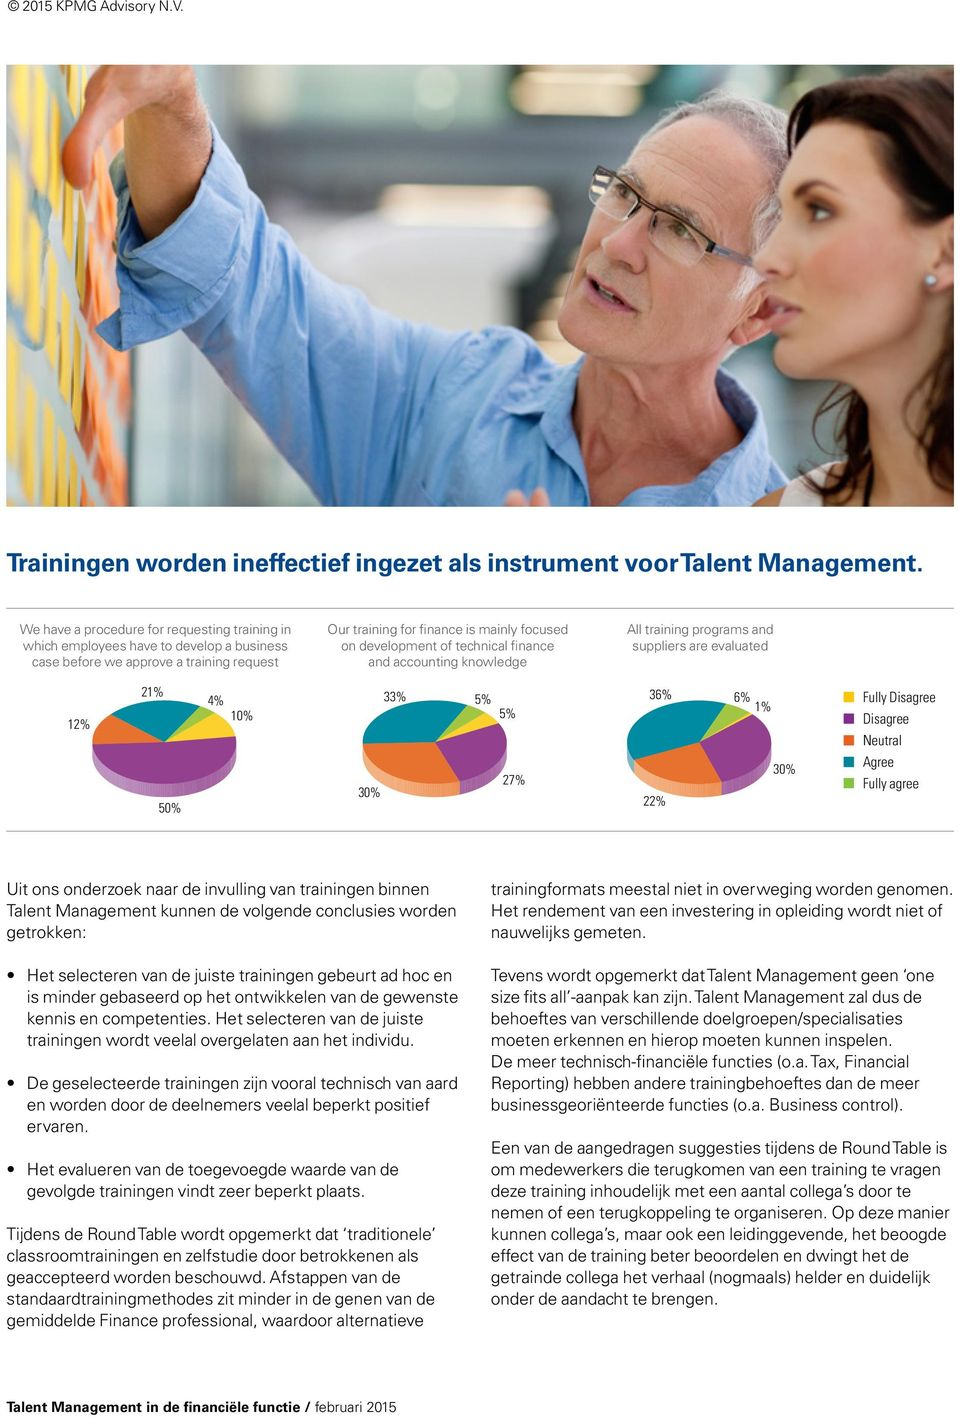 technical finance and accounting knowledge All training programs and suppliers are evaluated 12% 2 50% 4% 10% 30% 33% 5% 5% 27% 36% 22% 6% 30% Fully Uit ons onderzoek naar de invulling van trainingen